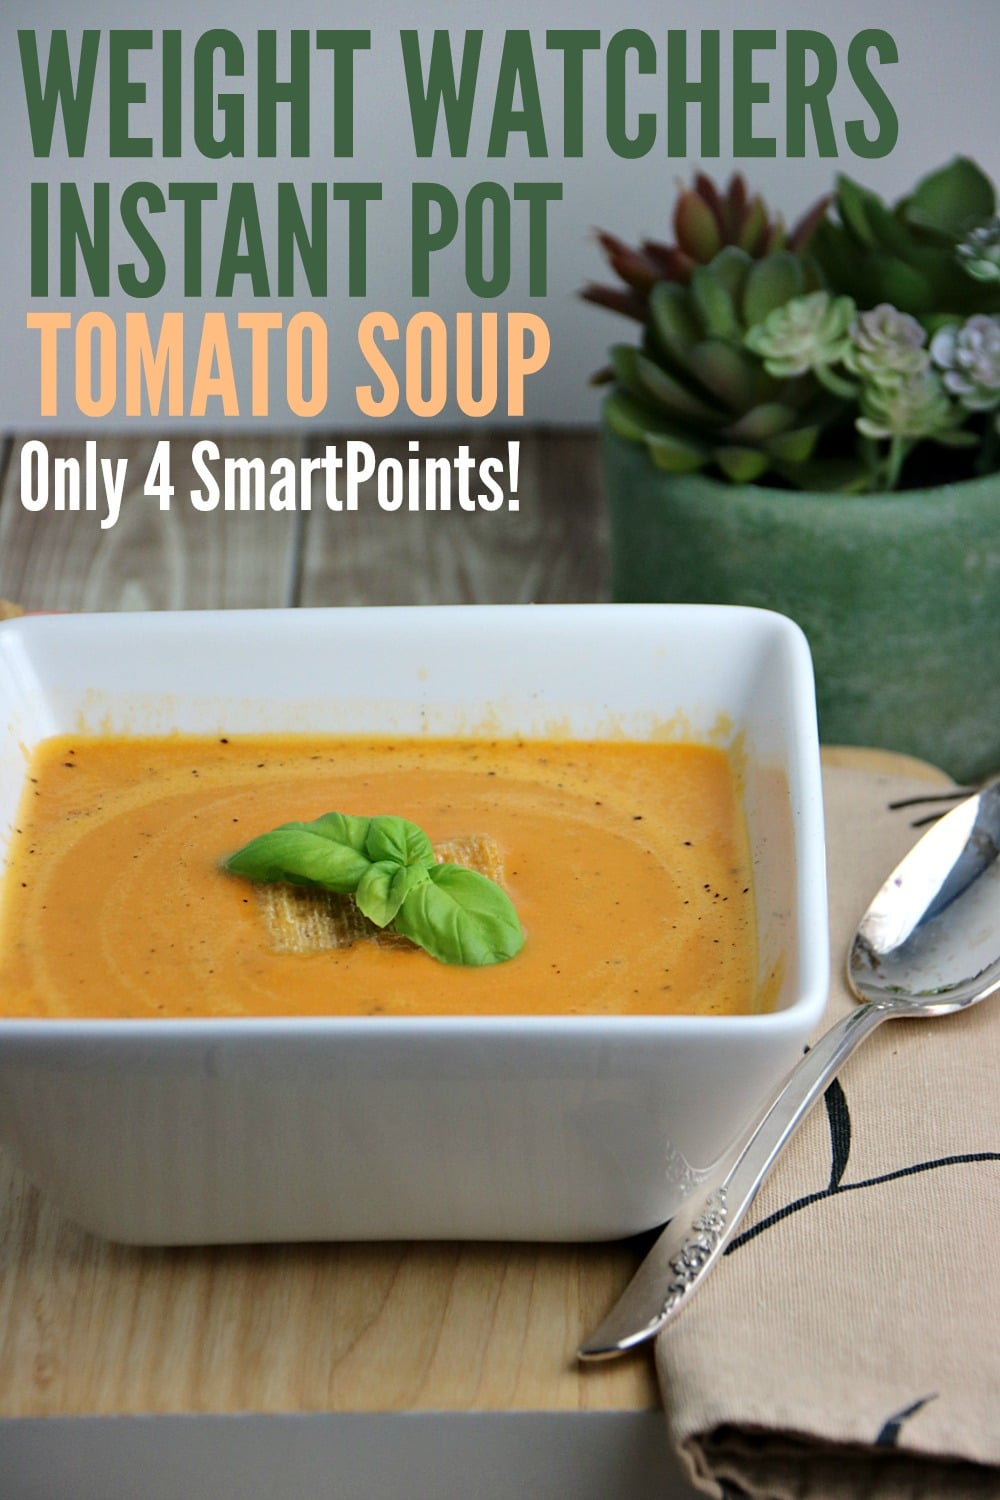 Instant Pot Tomato Soup Recipe